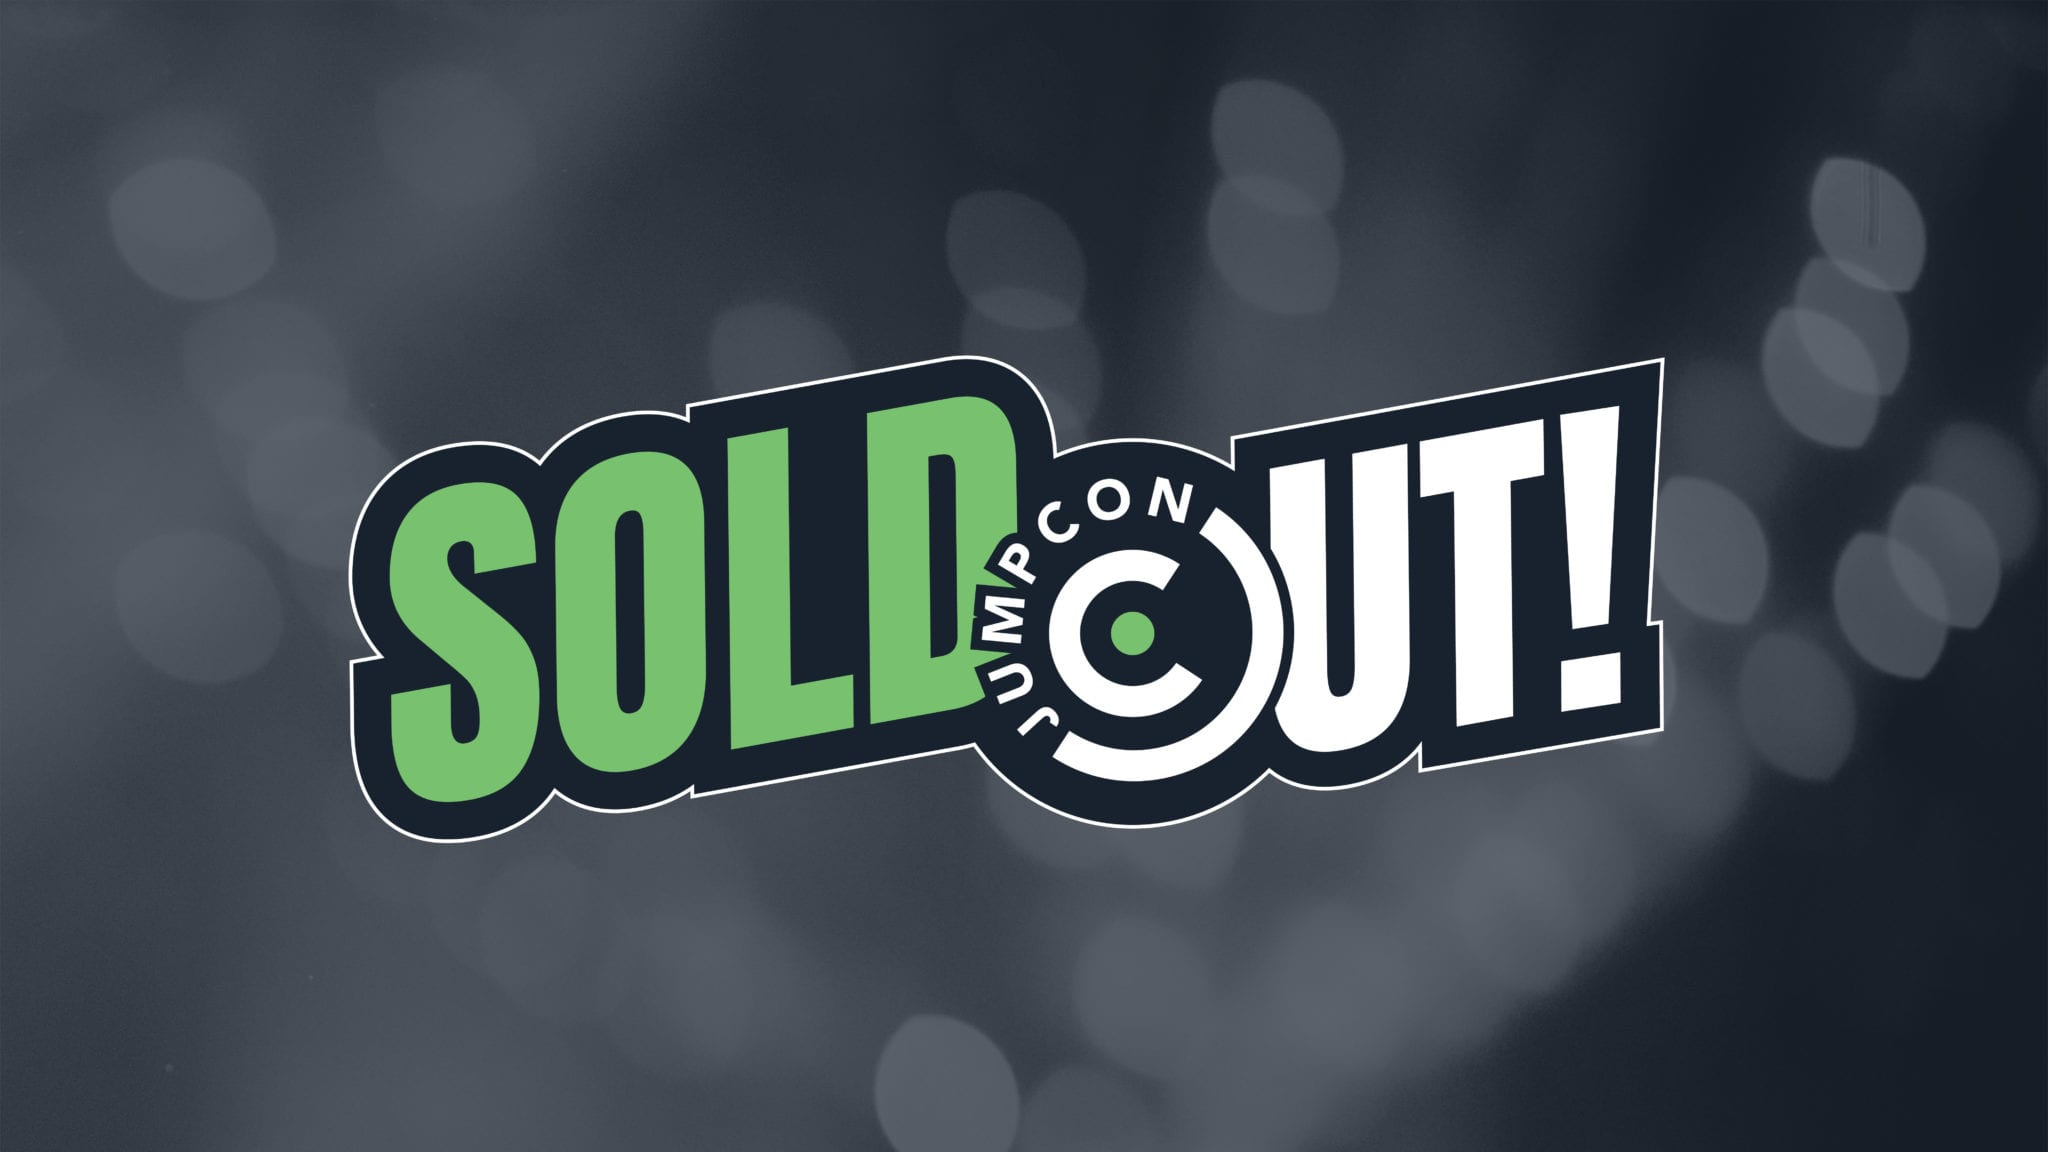 JumpCon sold out blog